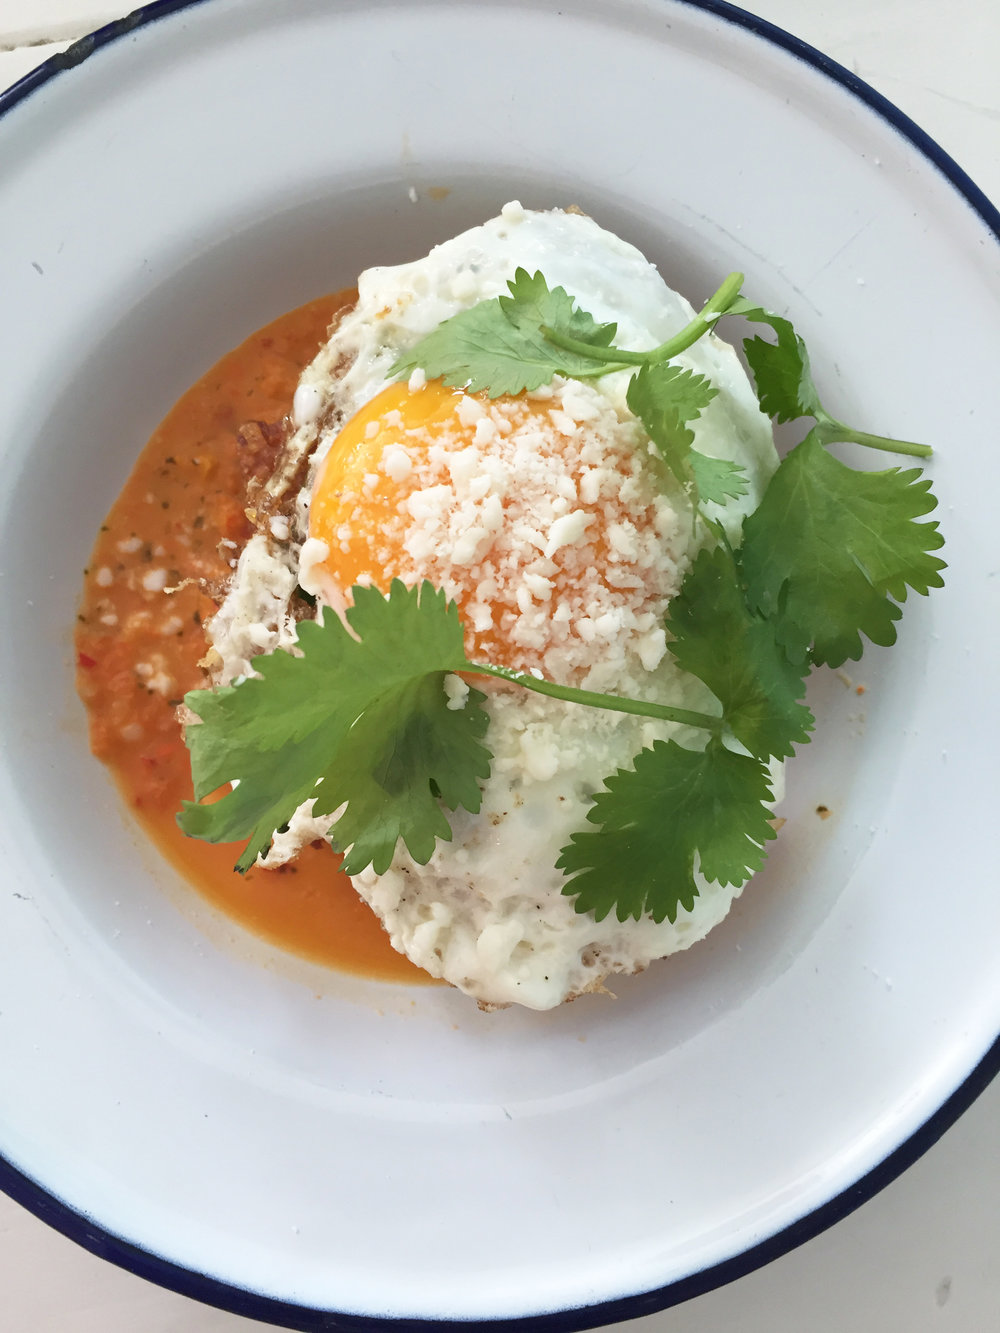 Crispy hash brown chilaquiles with sunny side up egg, cotija, and salsa macho.